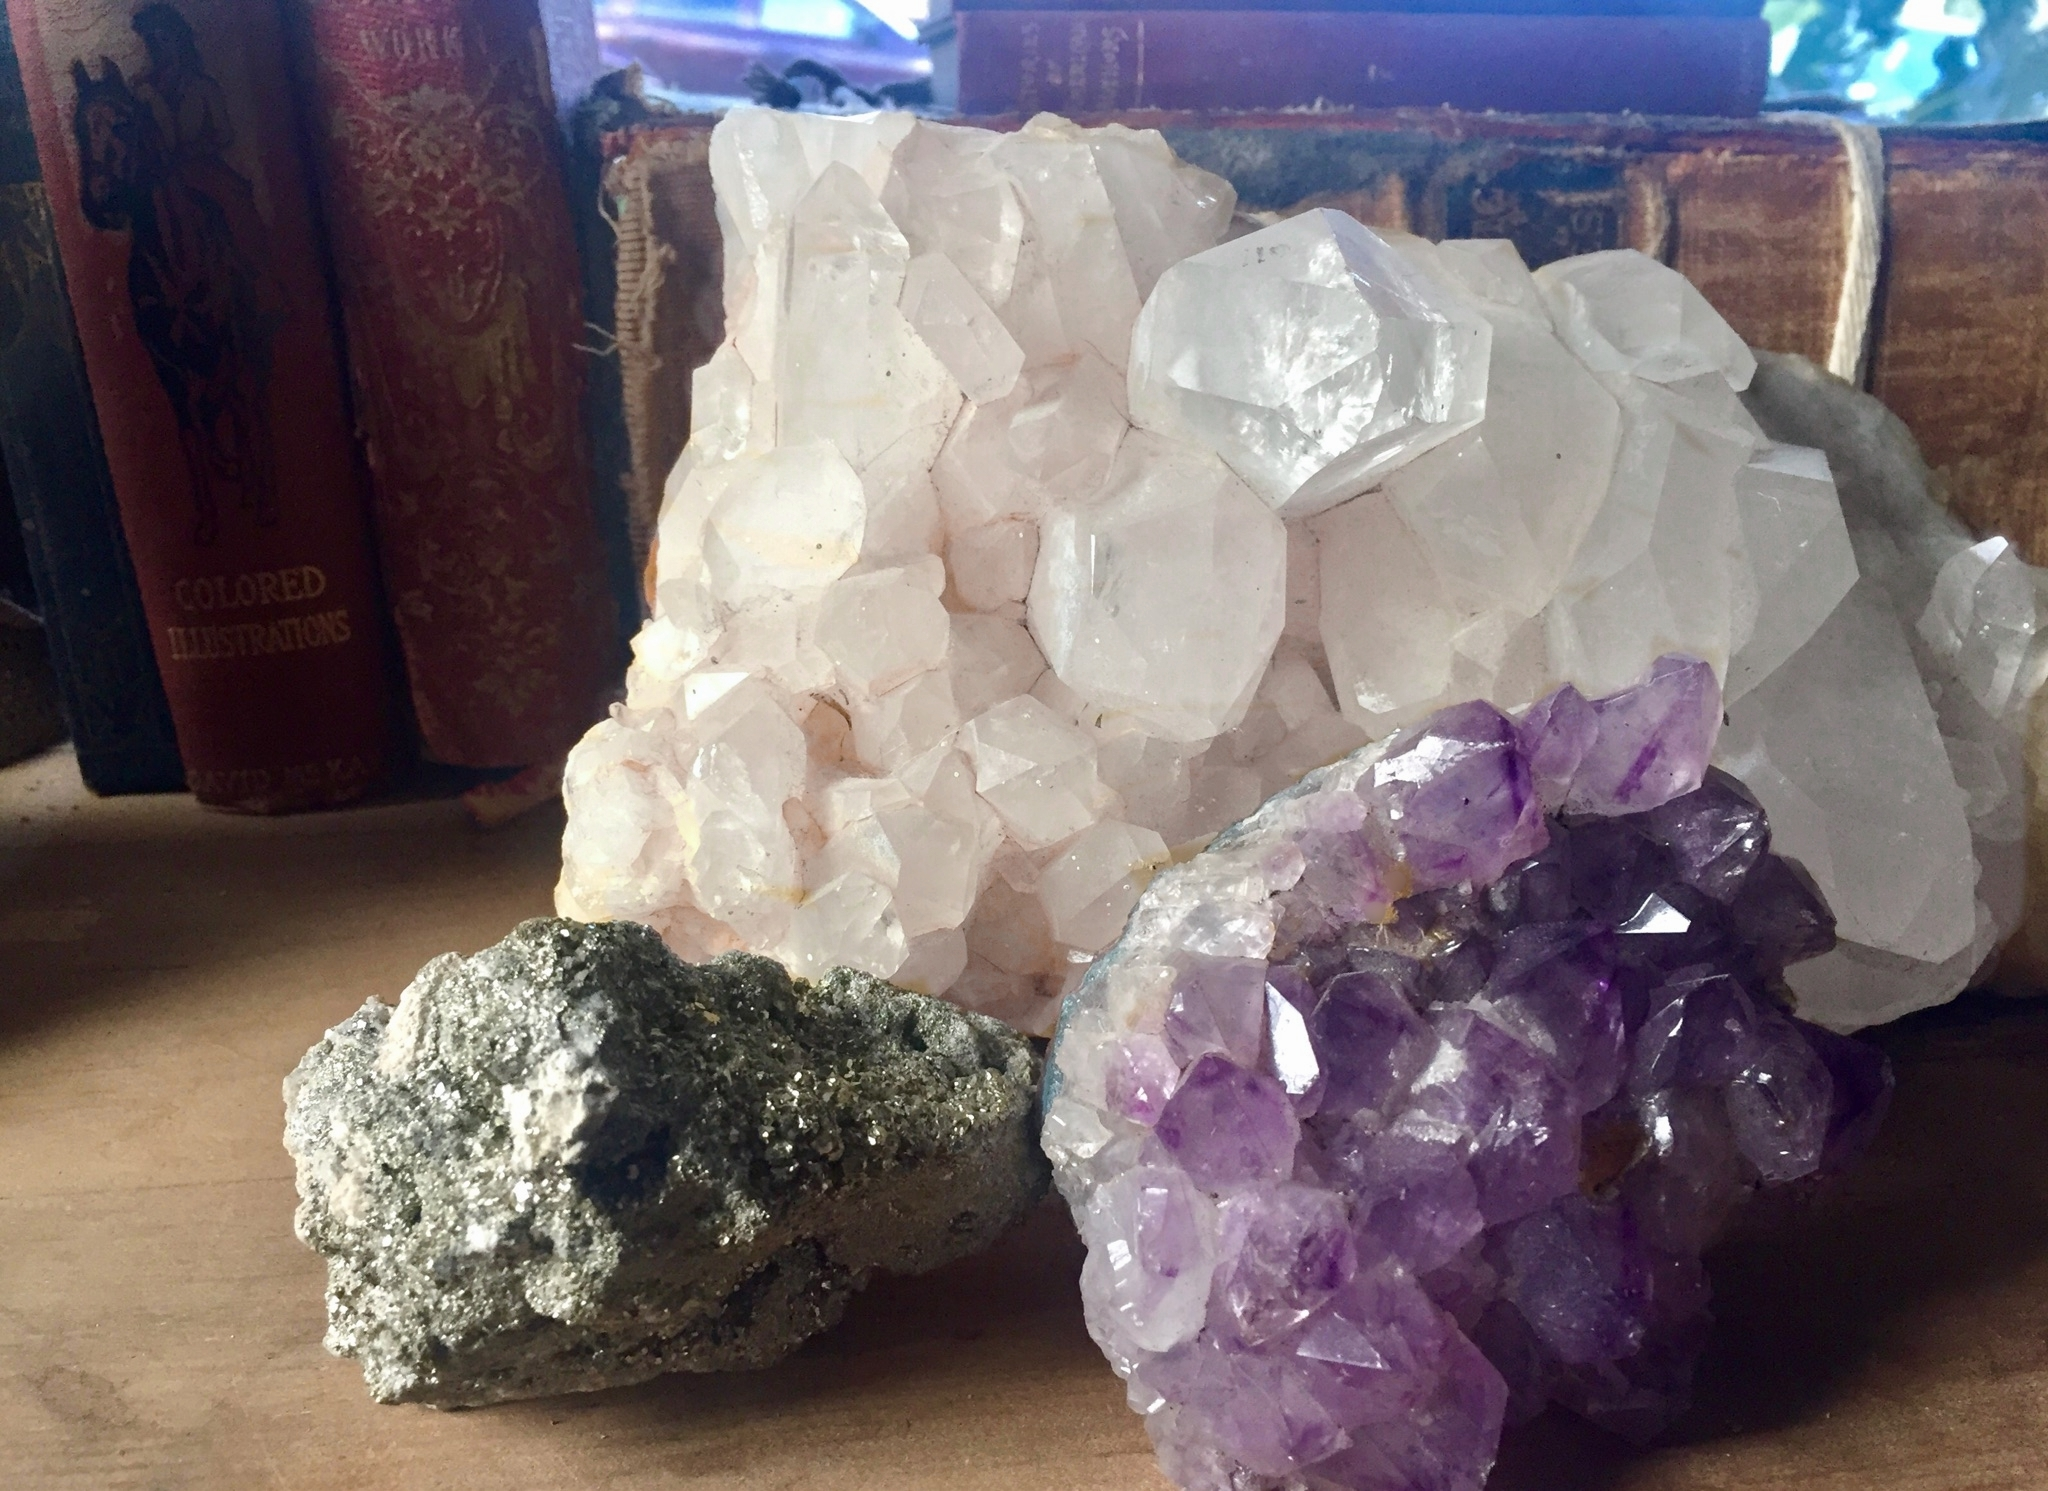 There's strength in numbers when grouping gemstones. Shown counter clockwise is pyrite, amethyst and angel quartz. Come grab your grouping at Filthy Gorgeous.